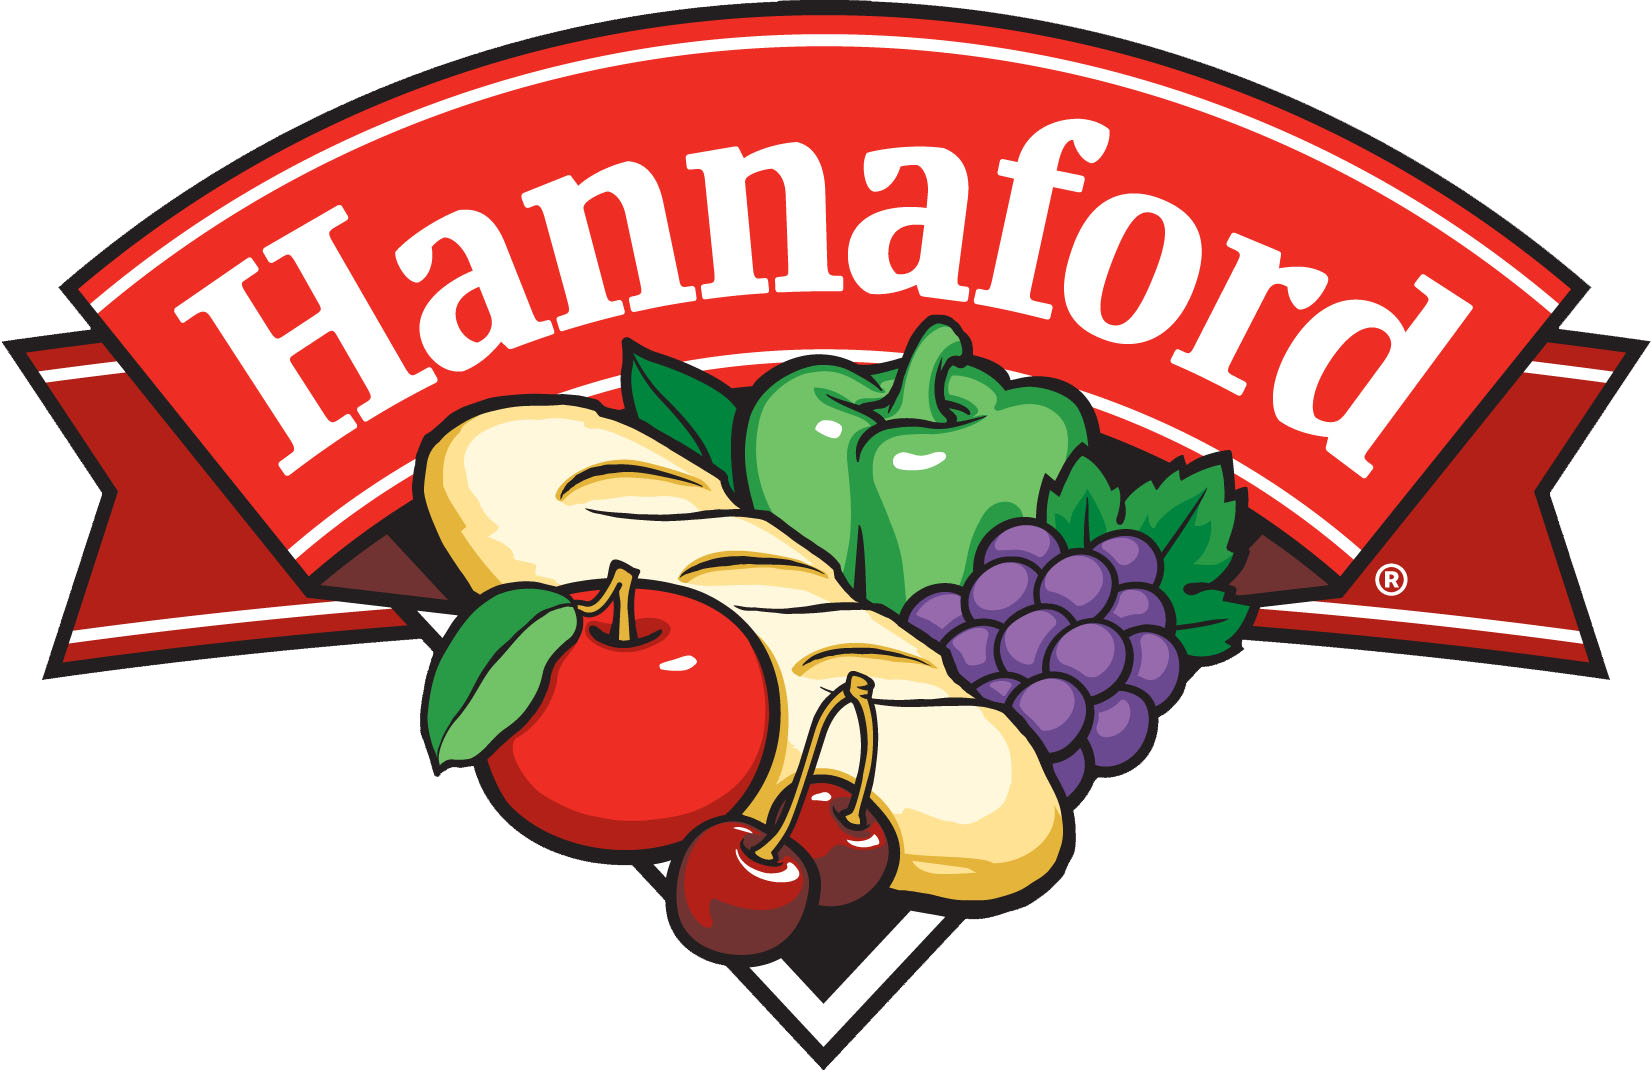 hannaford logo transparent